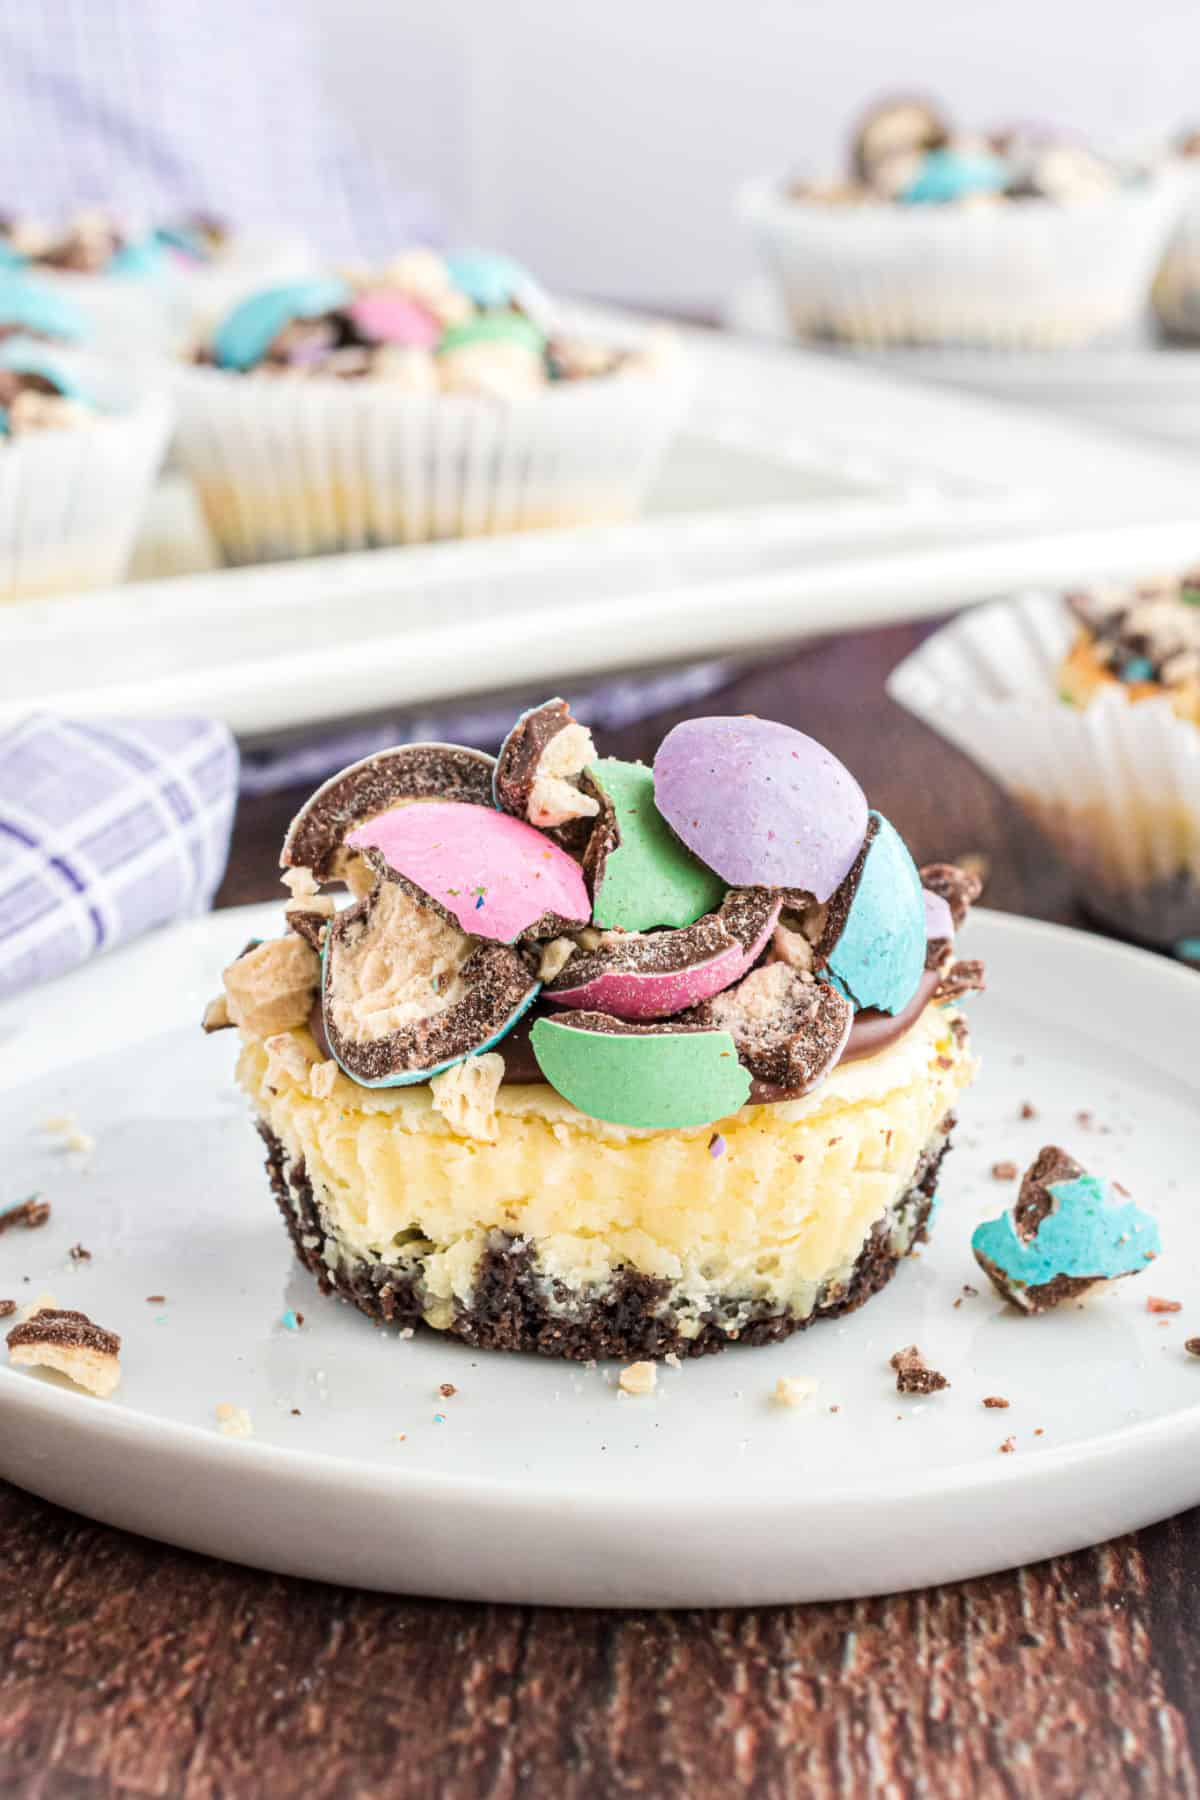 Mini cheesecakes topped with ganache and colored malt balls.